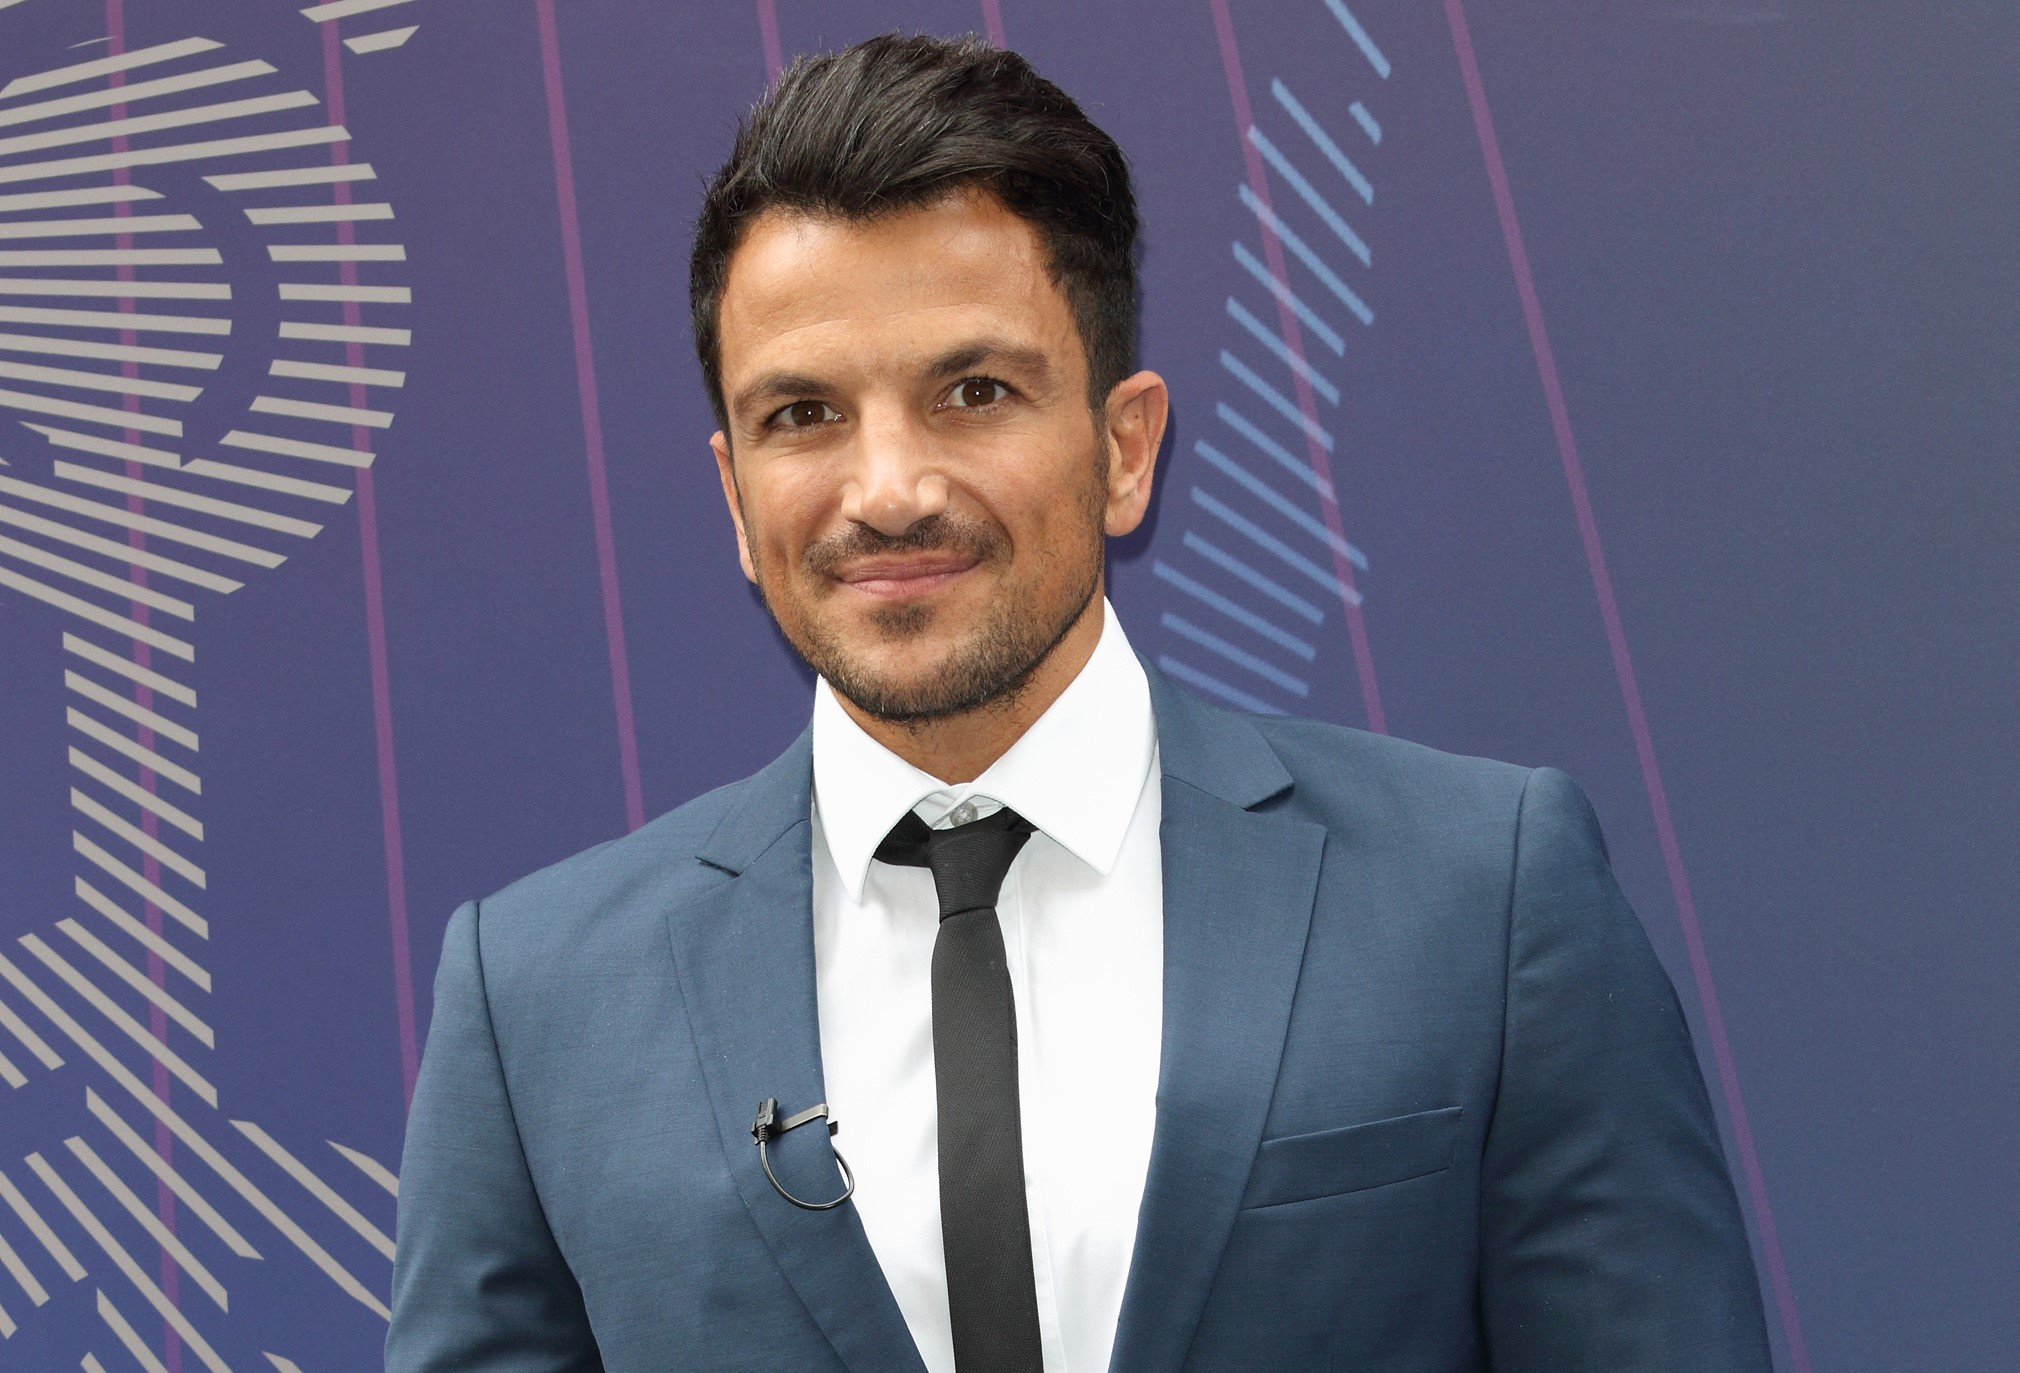 Peter Andre sends fans wild with saucy throwback snap